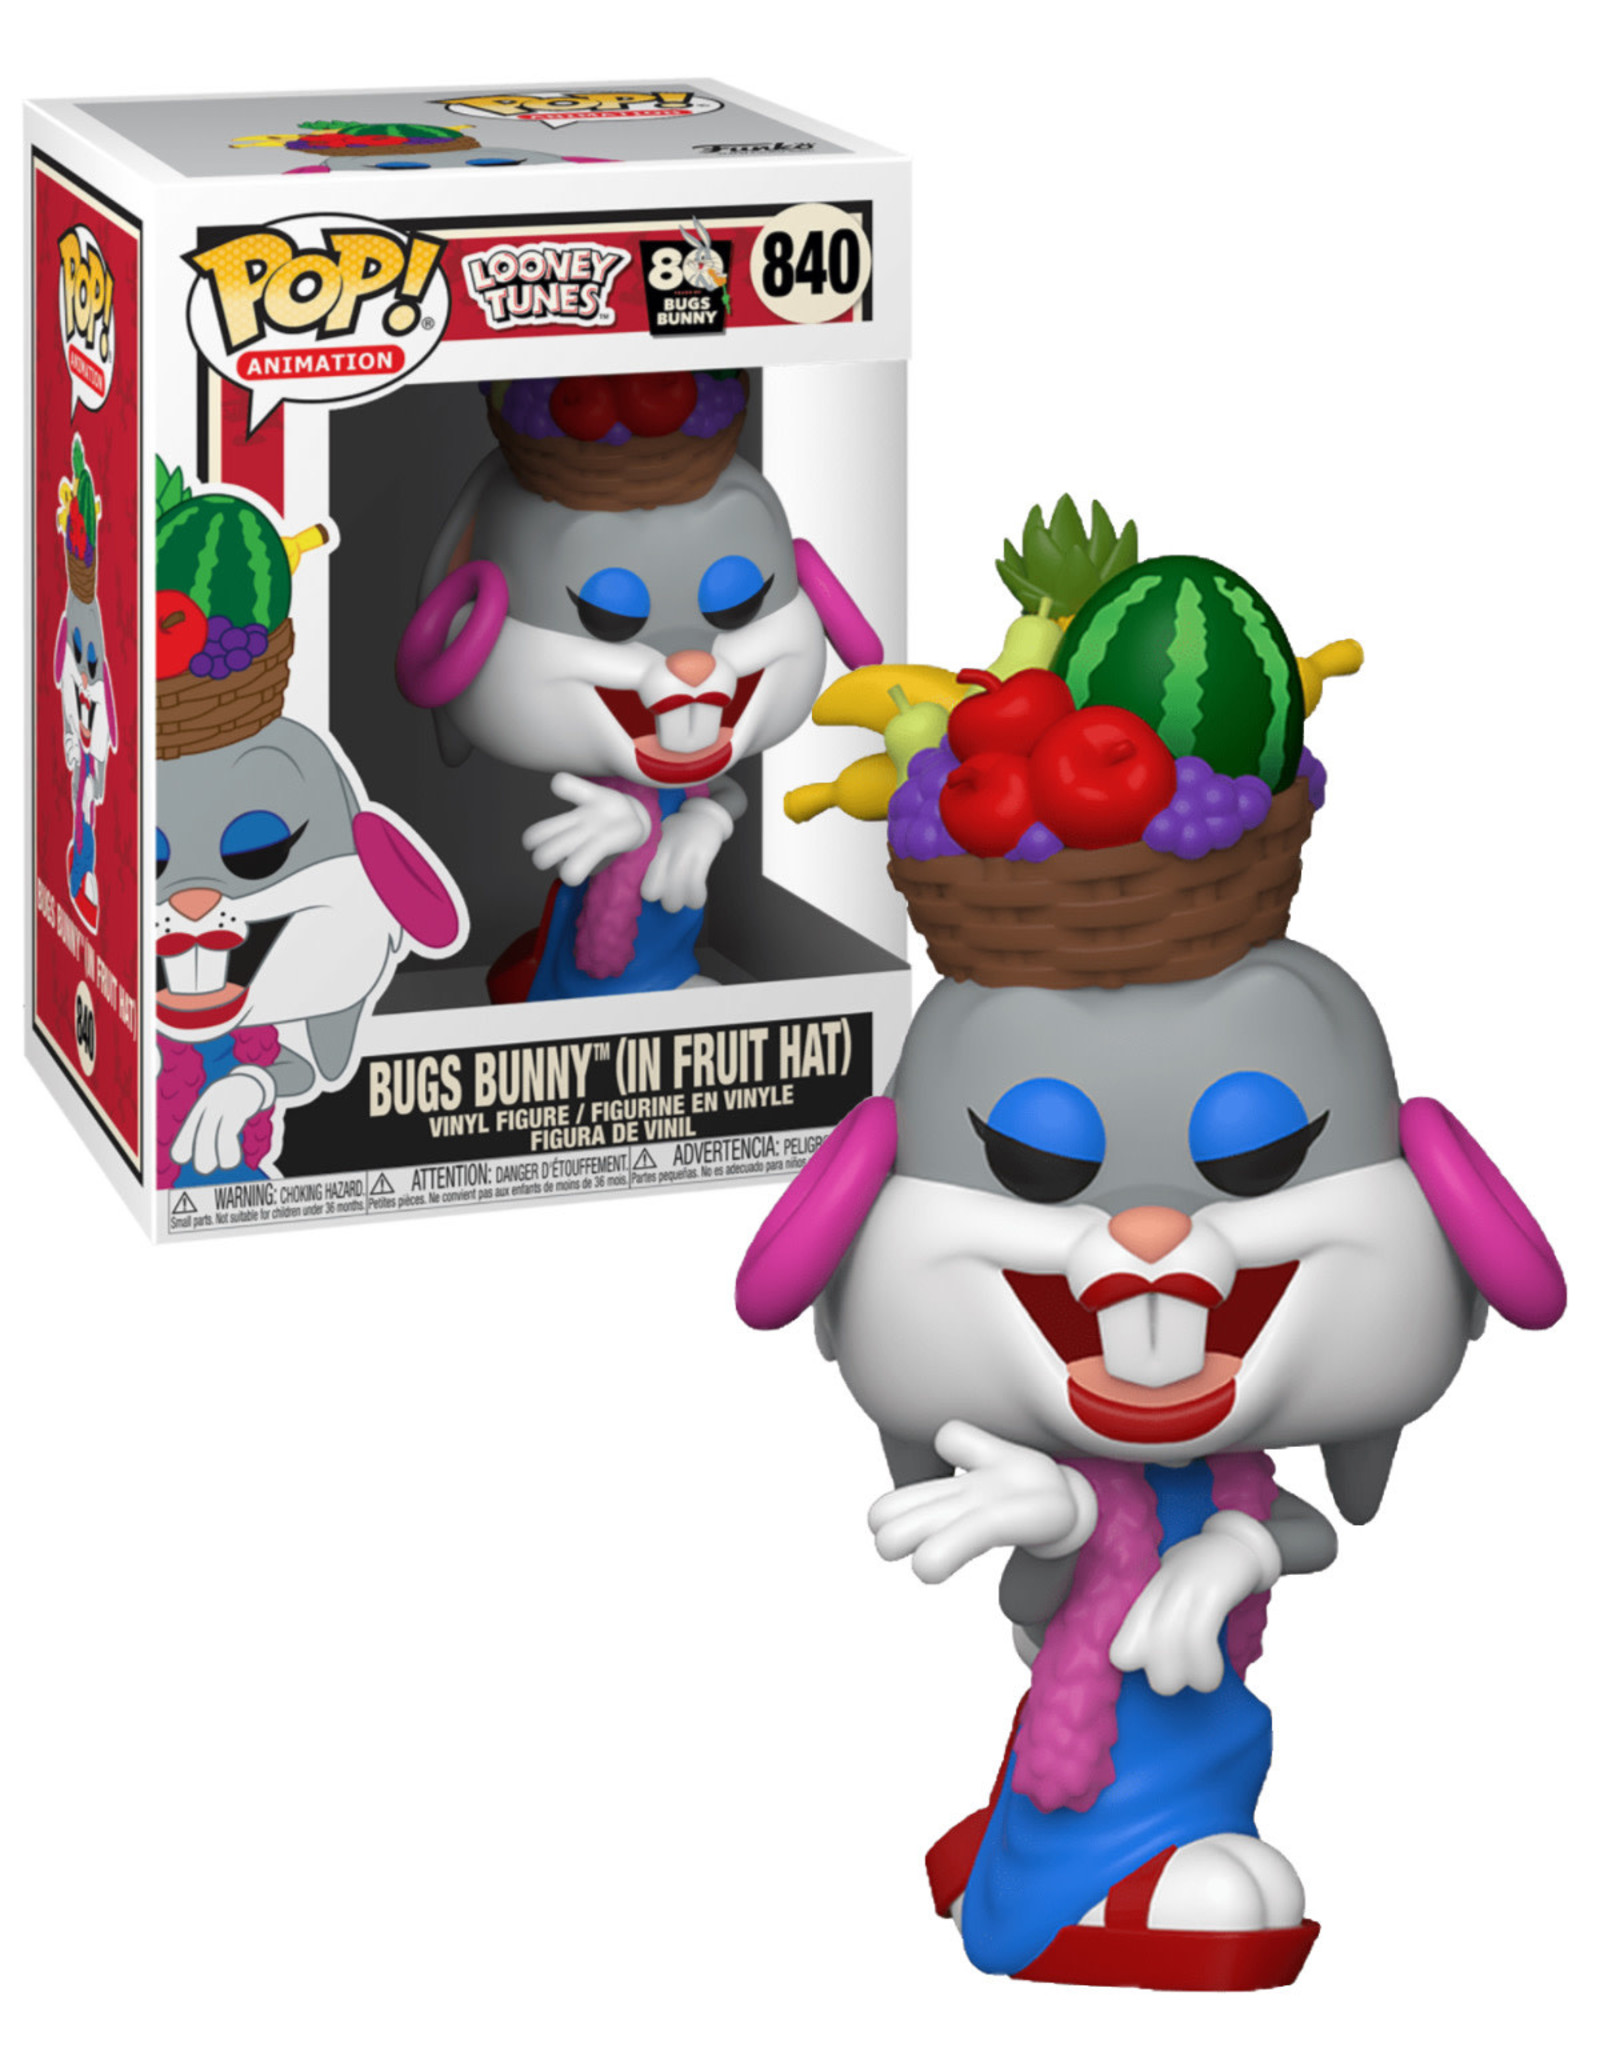 Looney Tunes 840 ( Funko Pop ) Bugs Bunny ( In Fruit Hat )